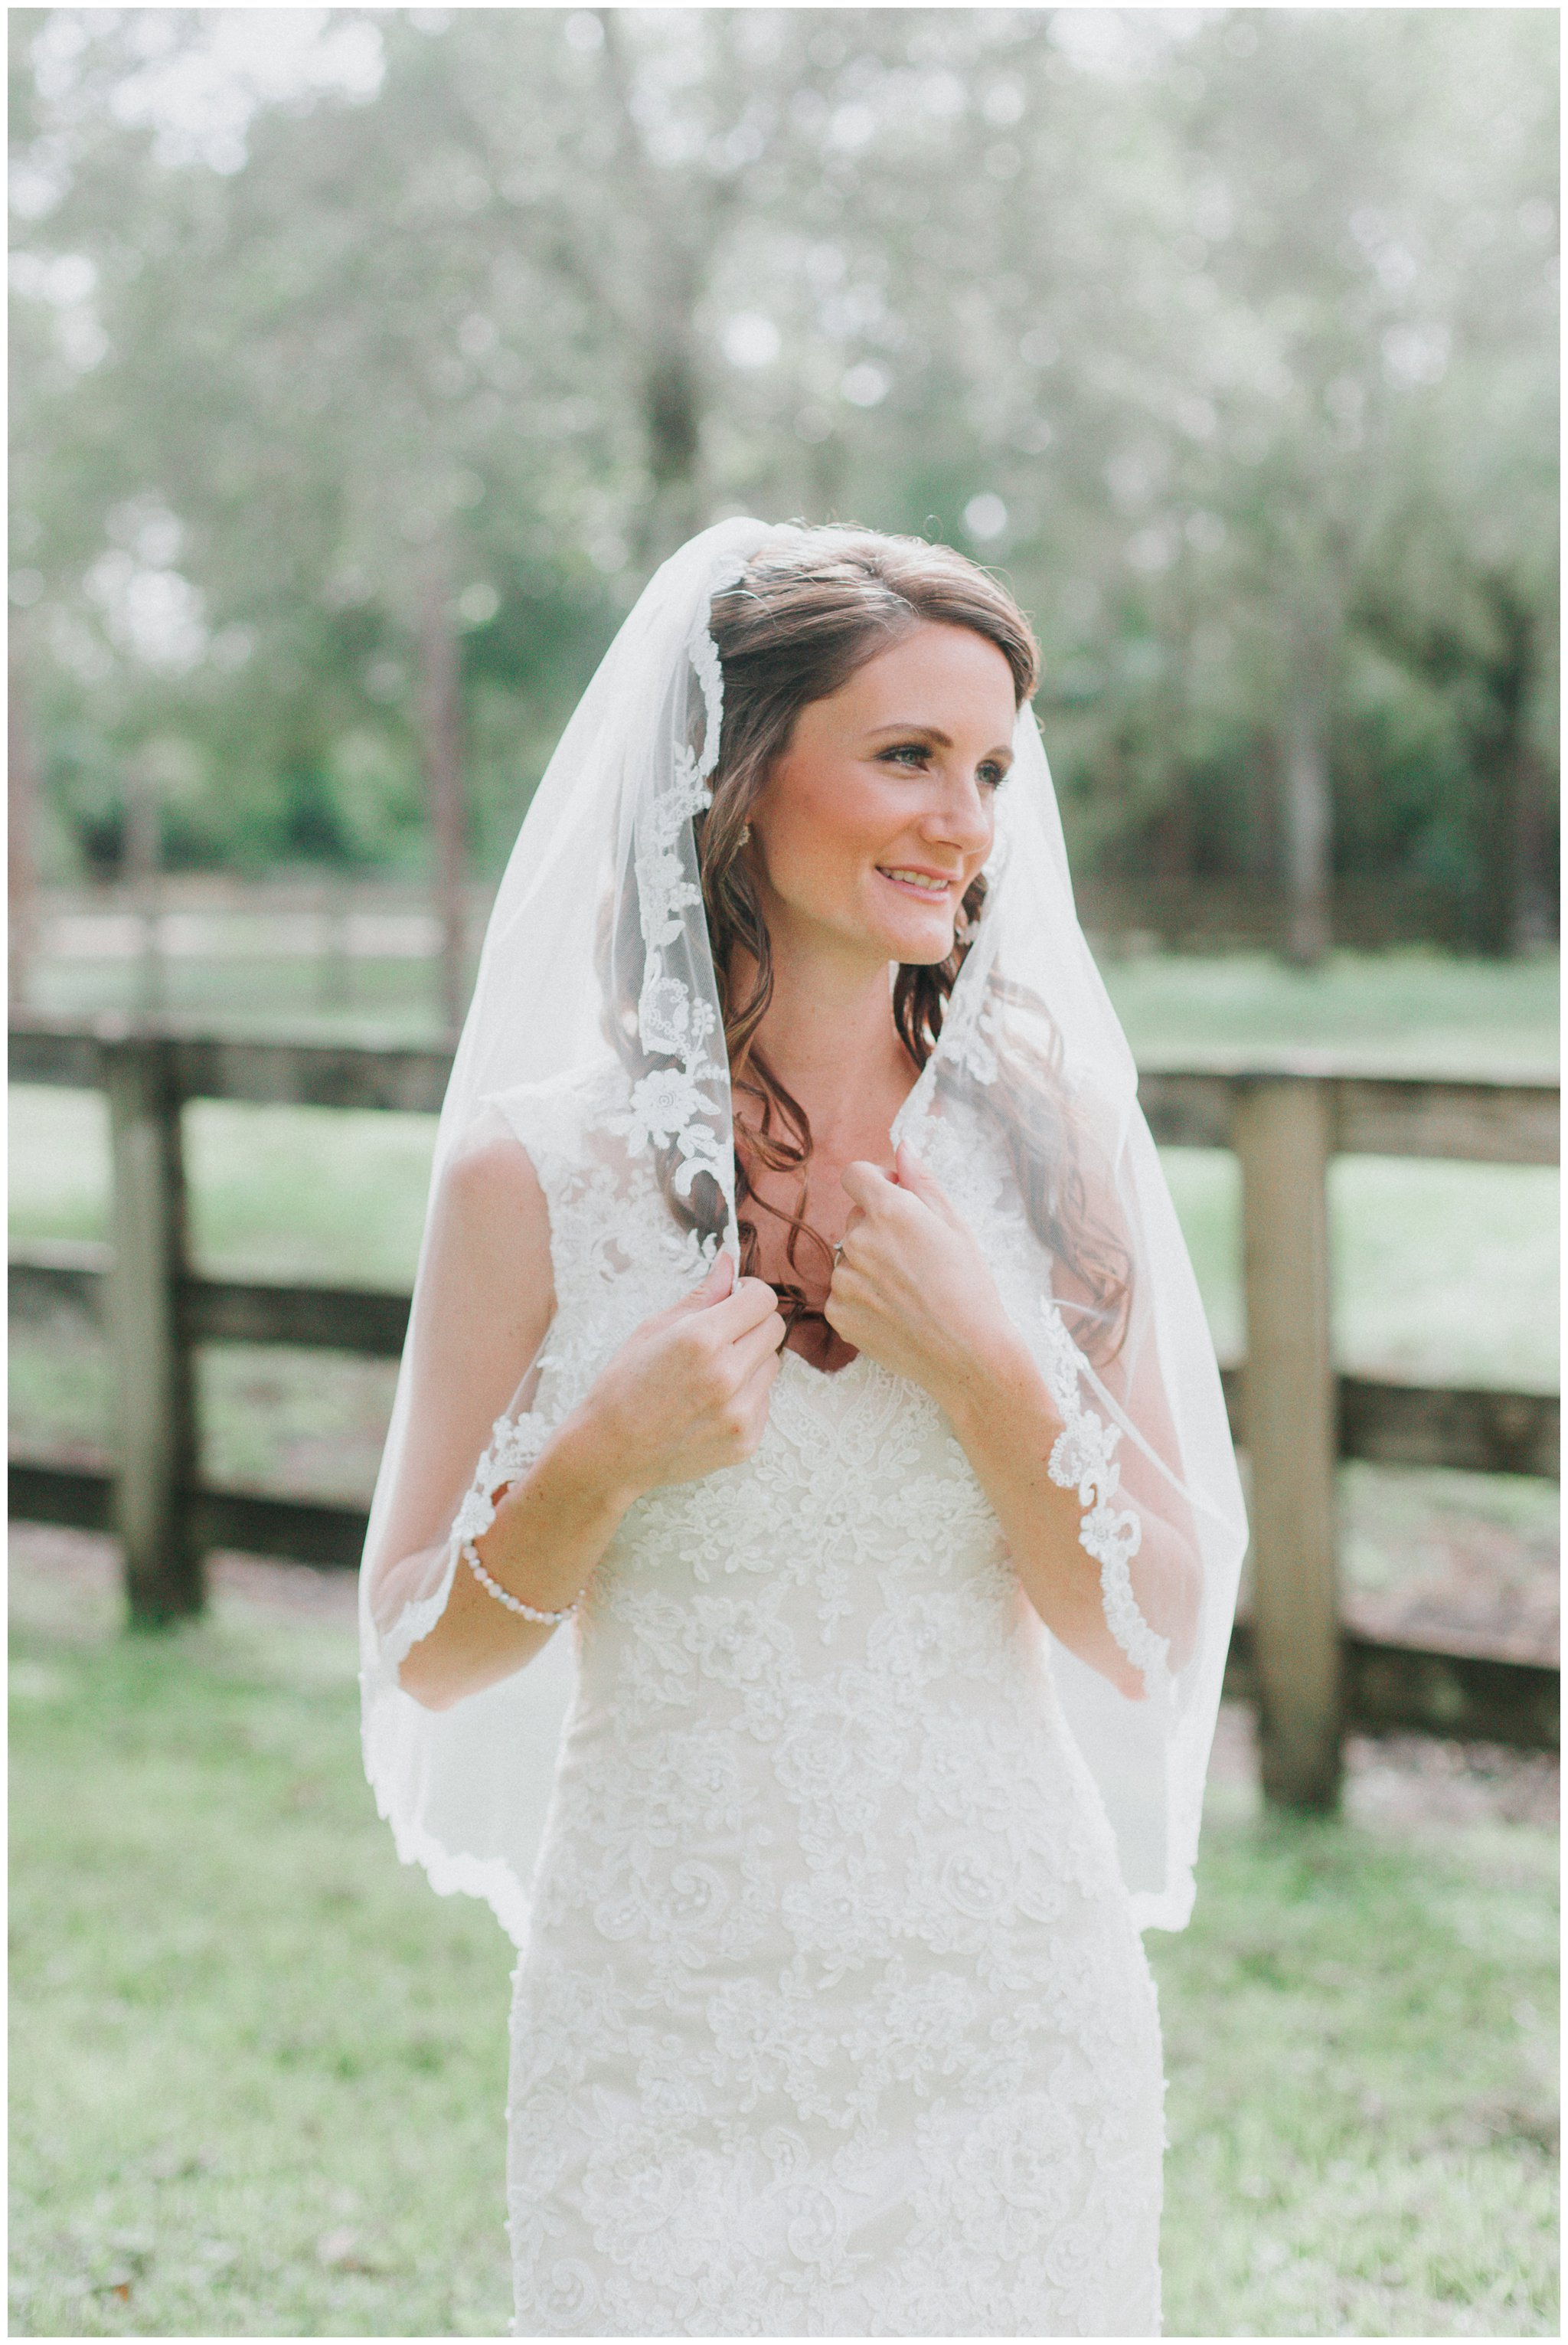 Check out the detail on her lace wedding dress! So beautiful!